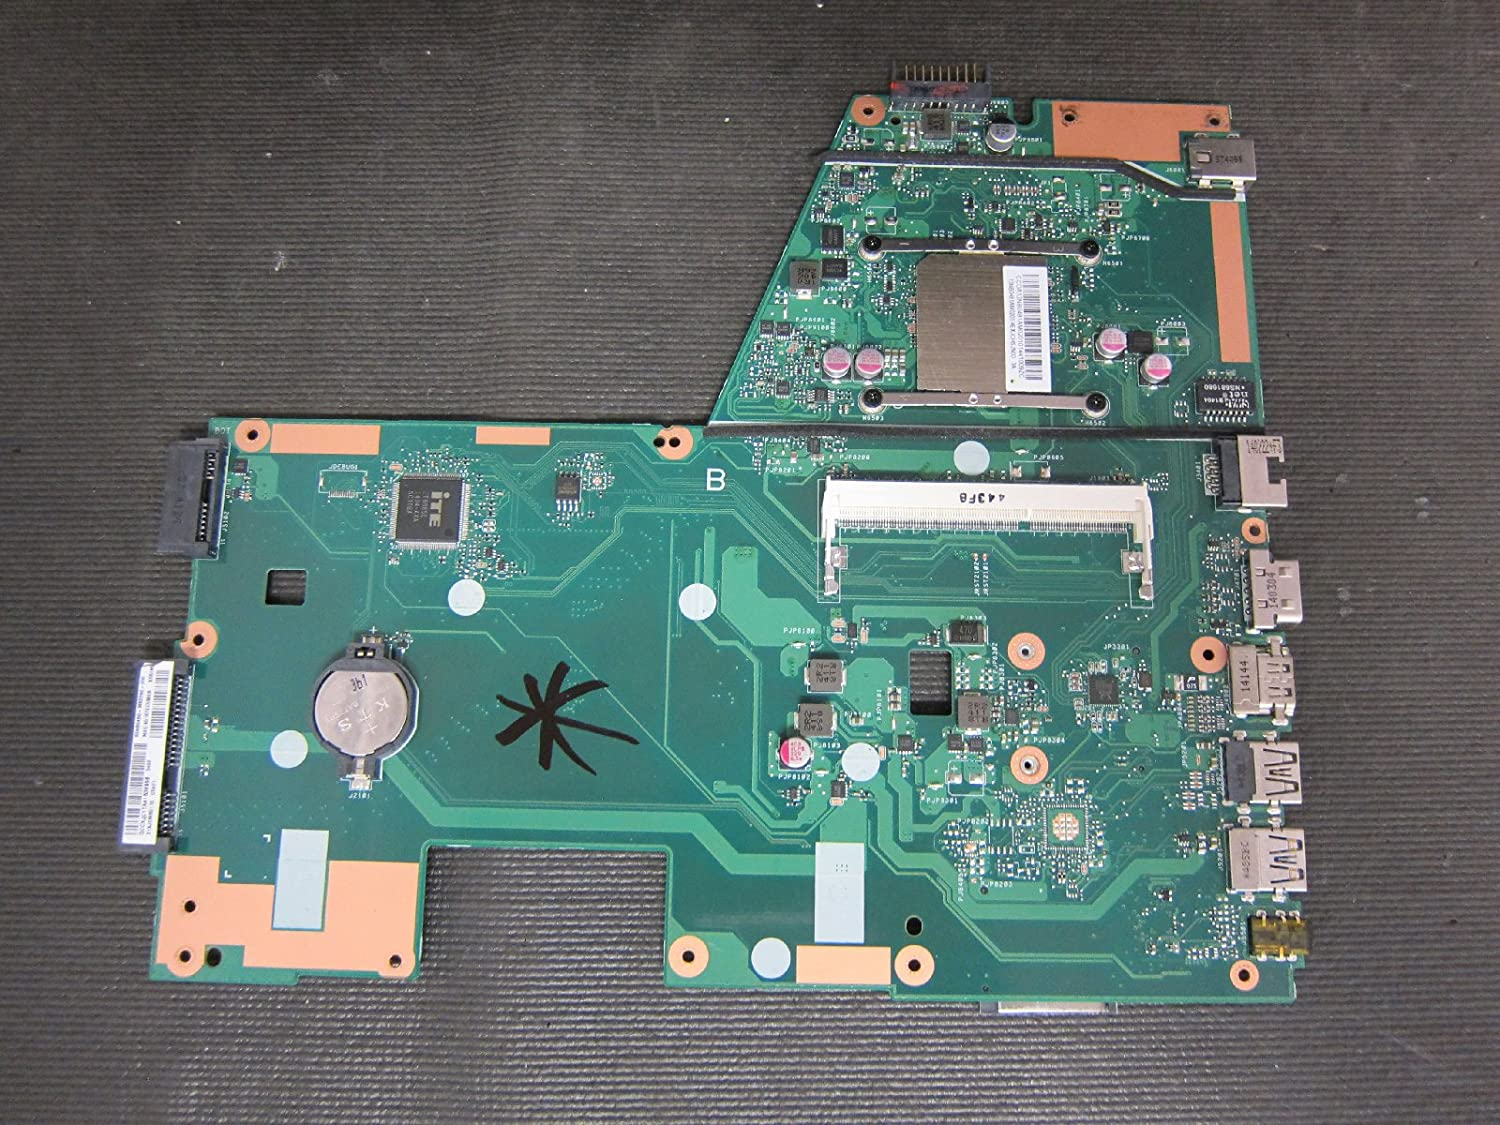 60NB0480-MB2200 Asus X551MA Laptop Free Cash special price shipping anywhere in the nation Motherboard Intel w N Celeron